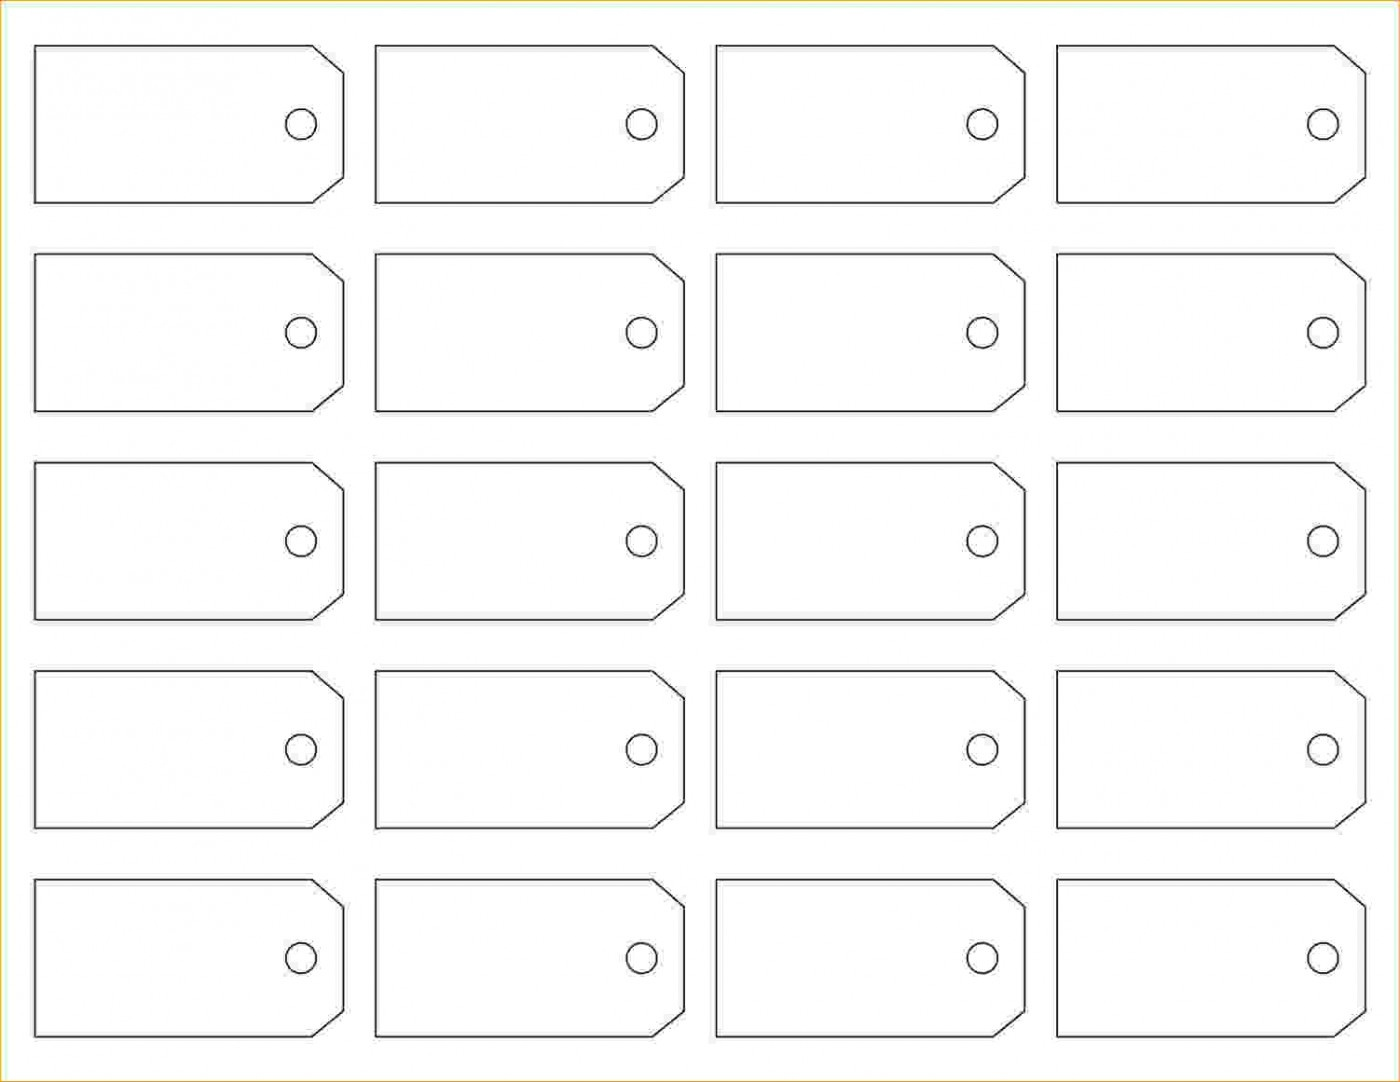 009 Kimilabels1 Free Printable Price Tags Template Best Ideas Labels - Free Printable Price Labels